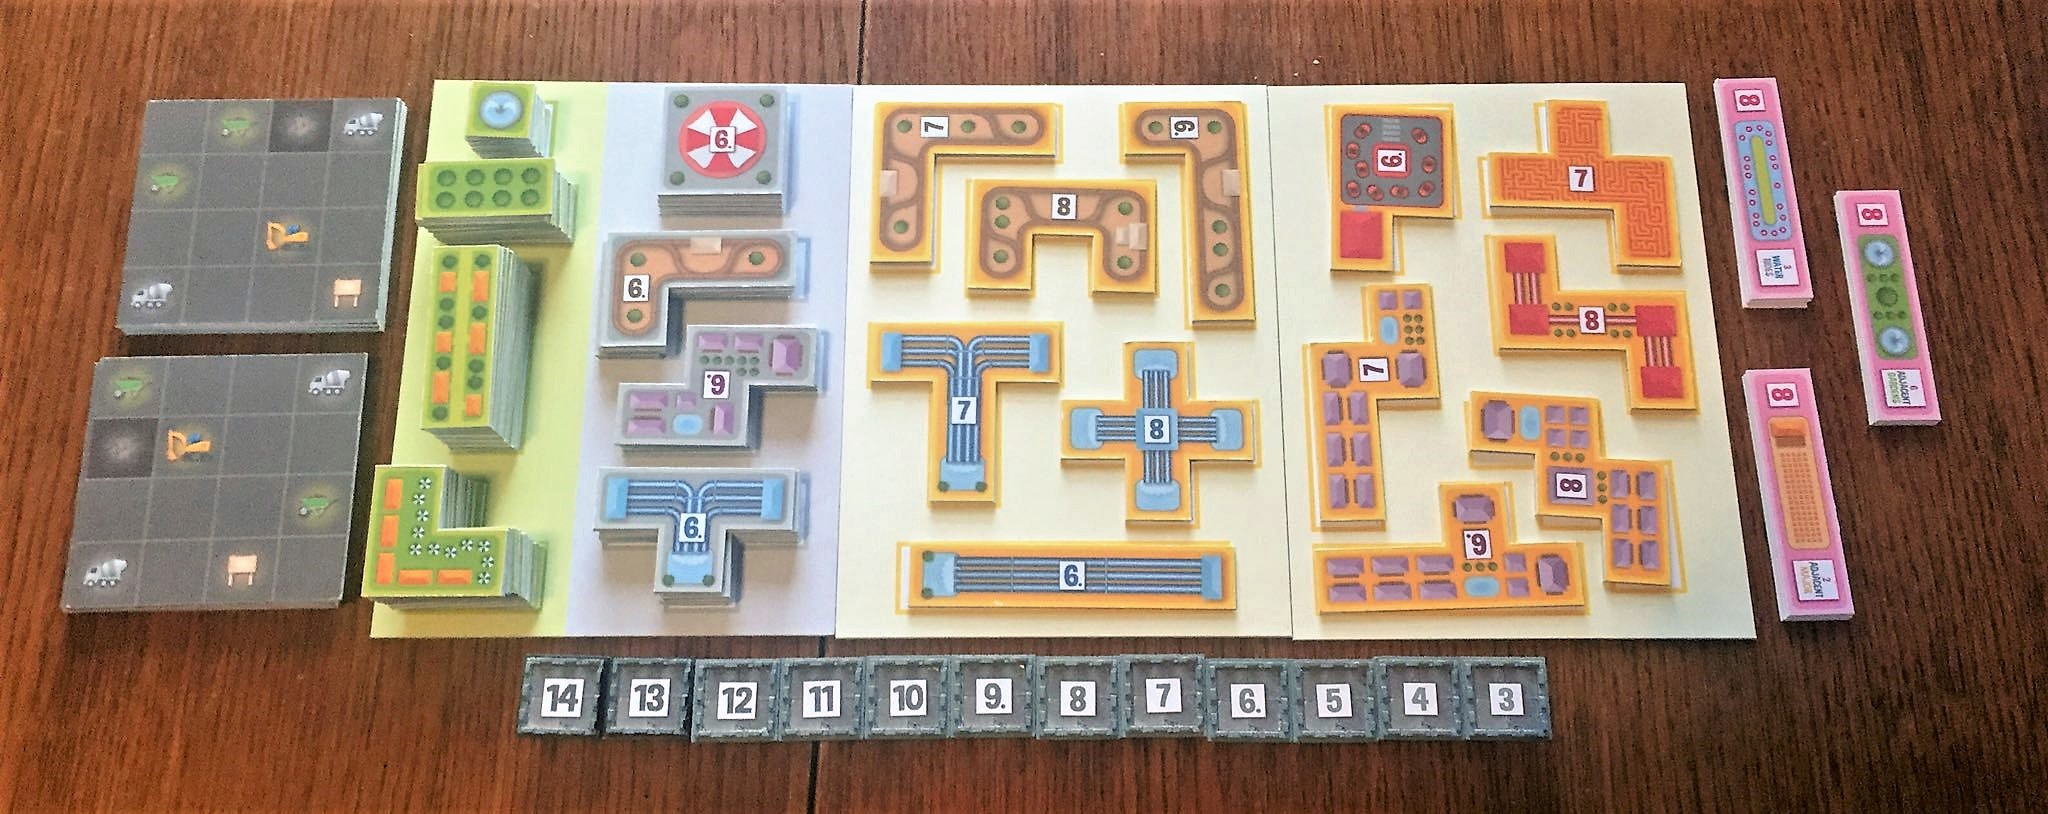 Prototype of Bärenpark board game (known at that time as Wonderland)